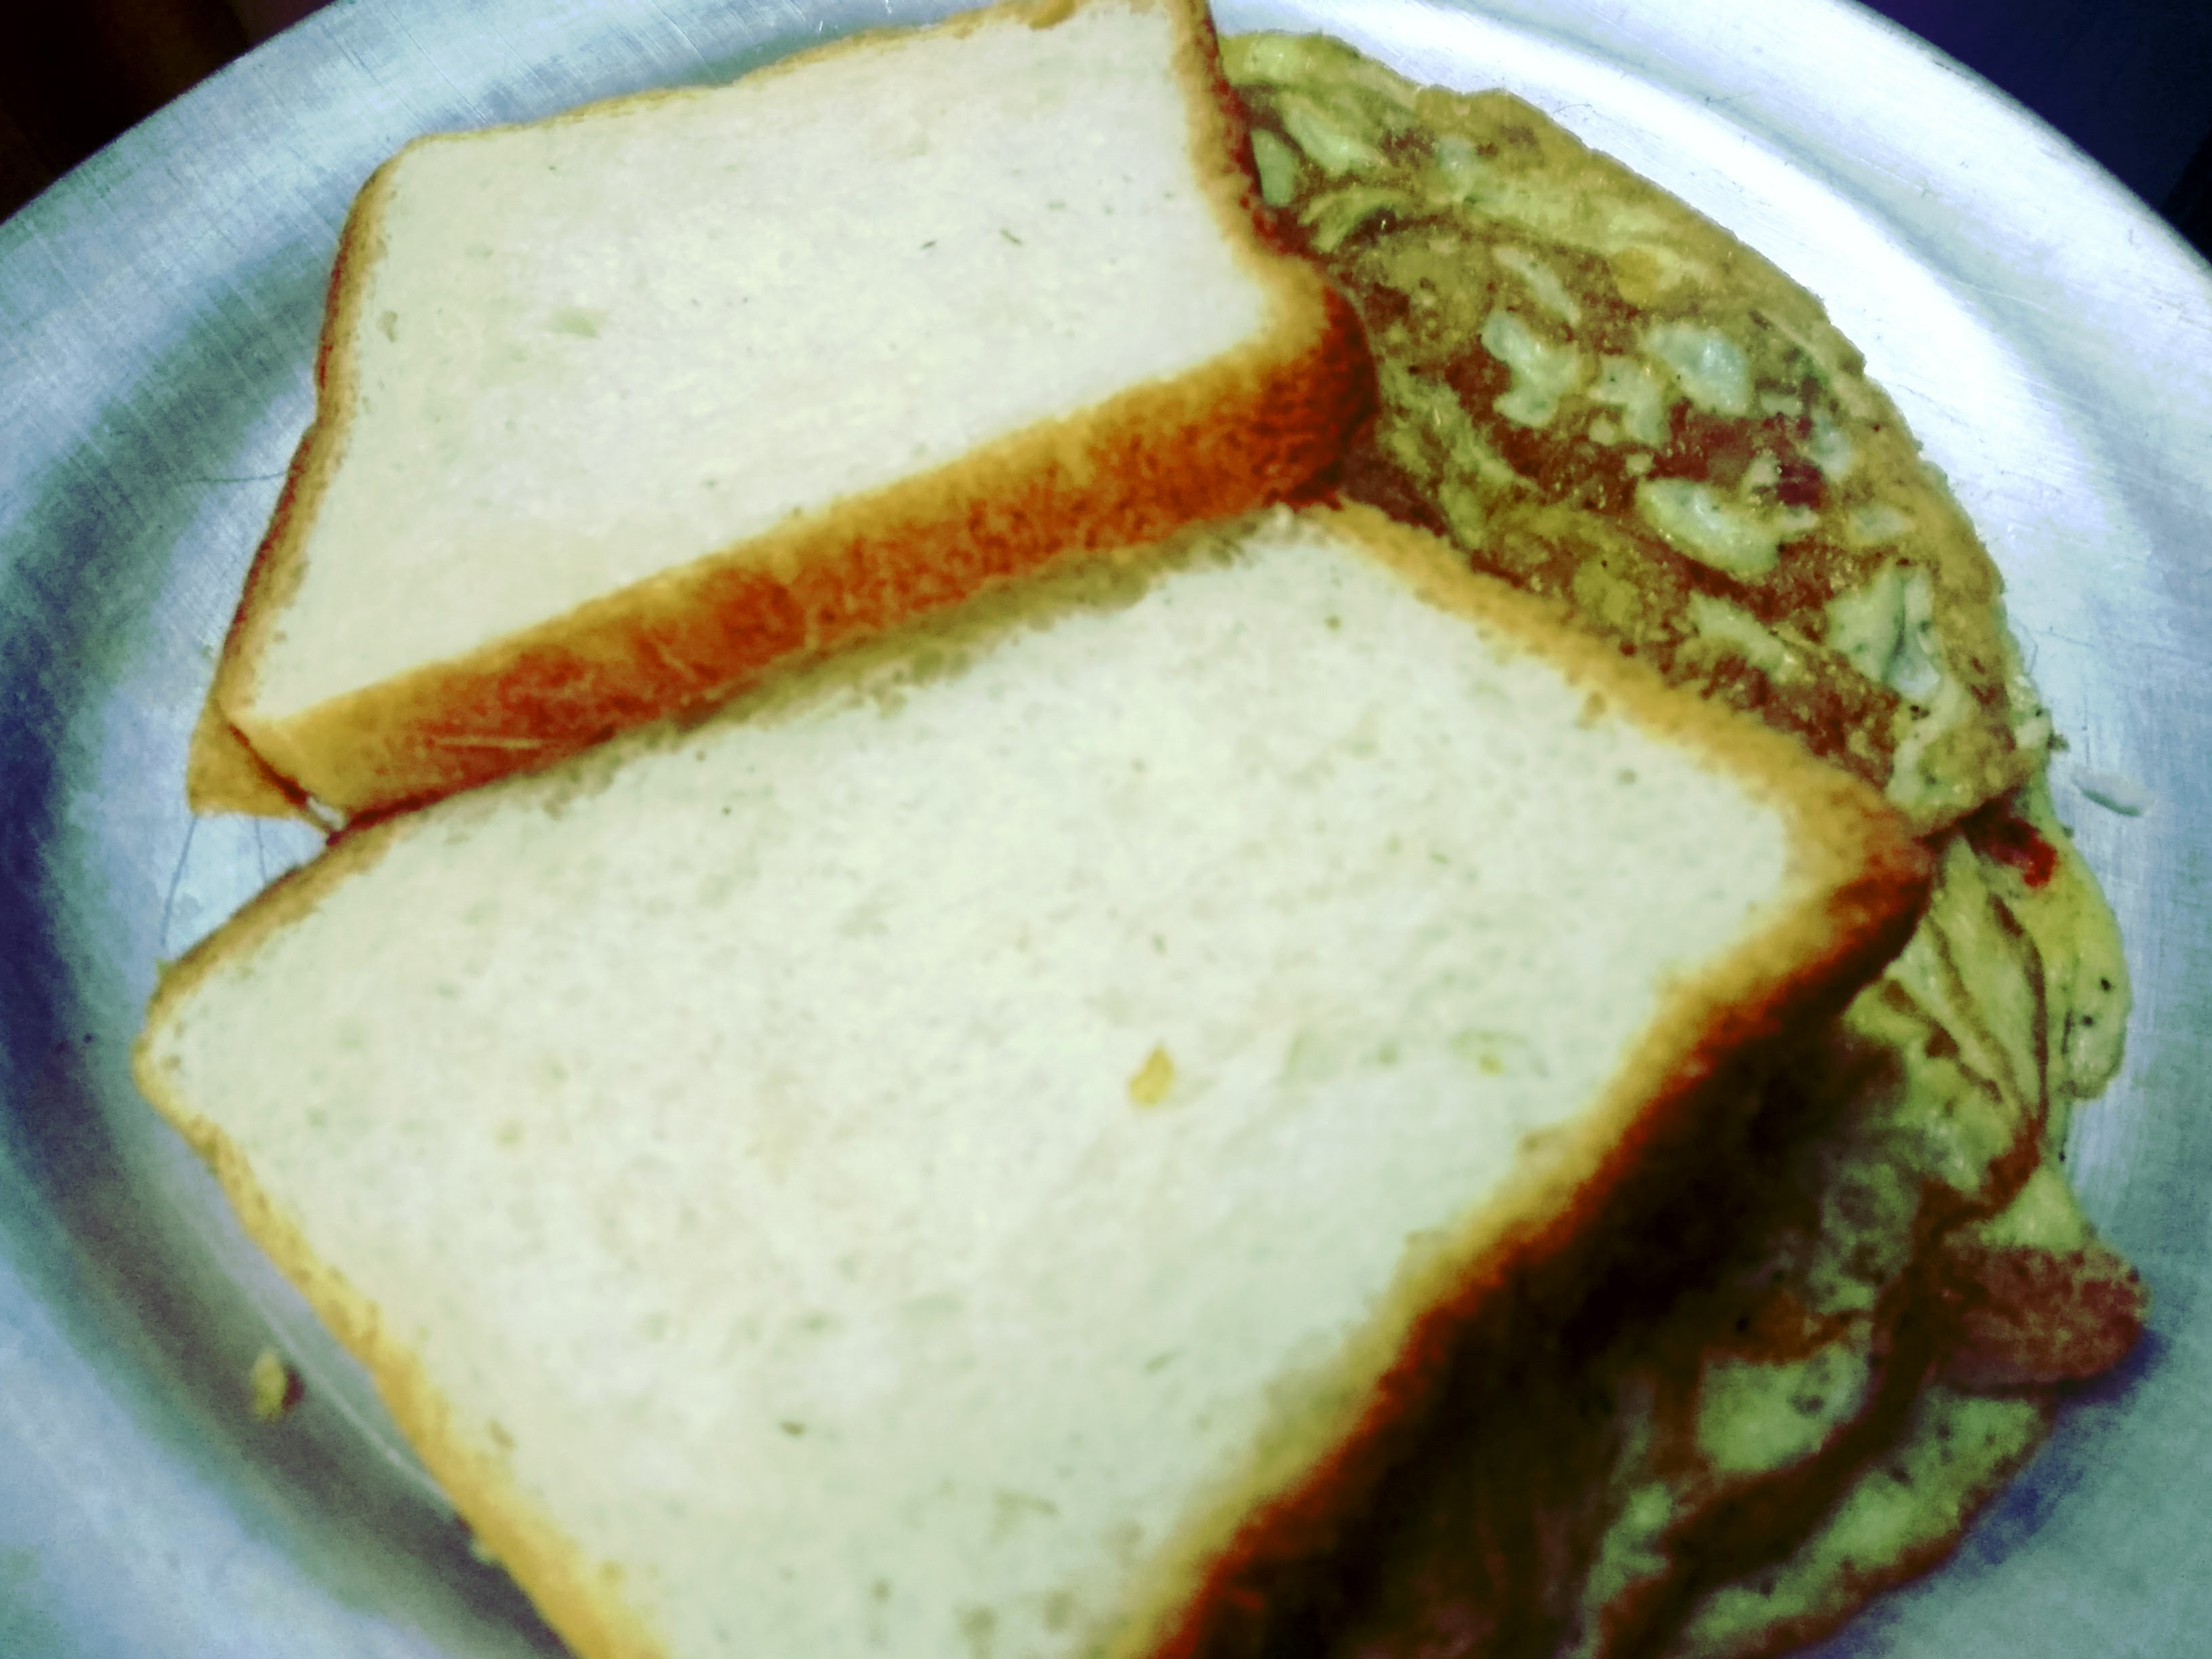 Picture of The Sandwich